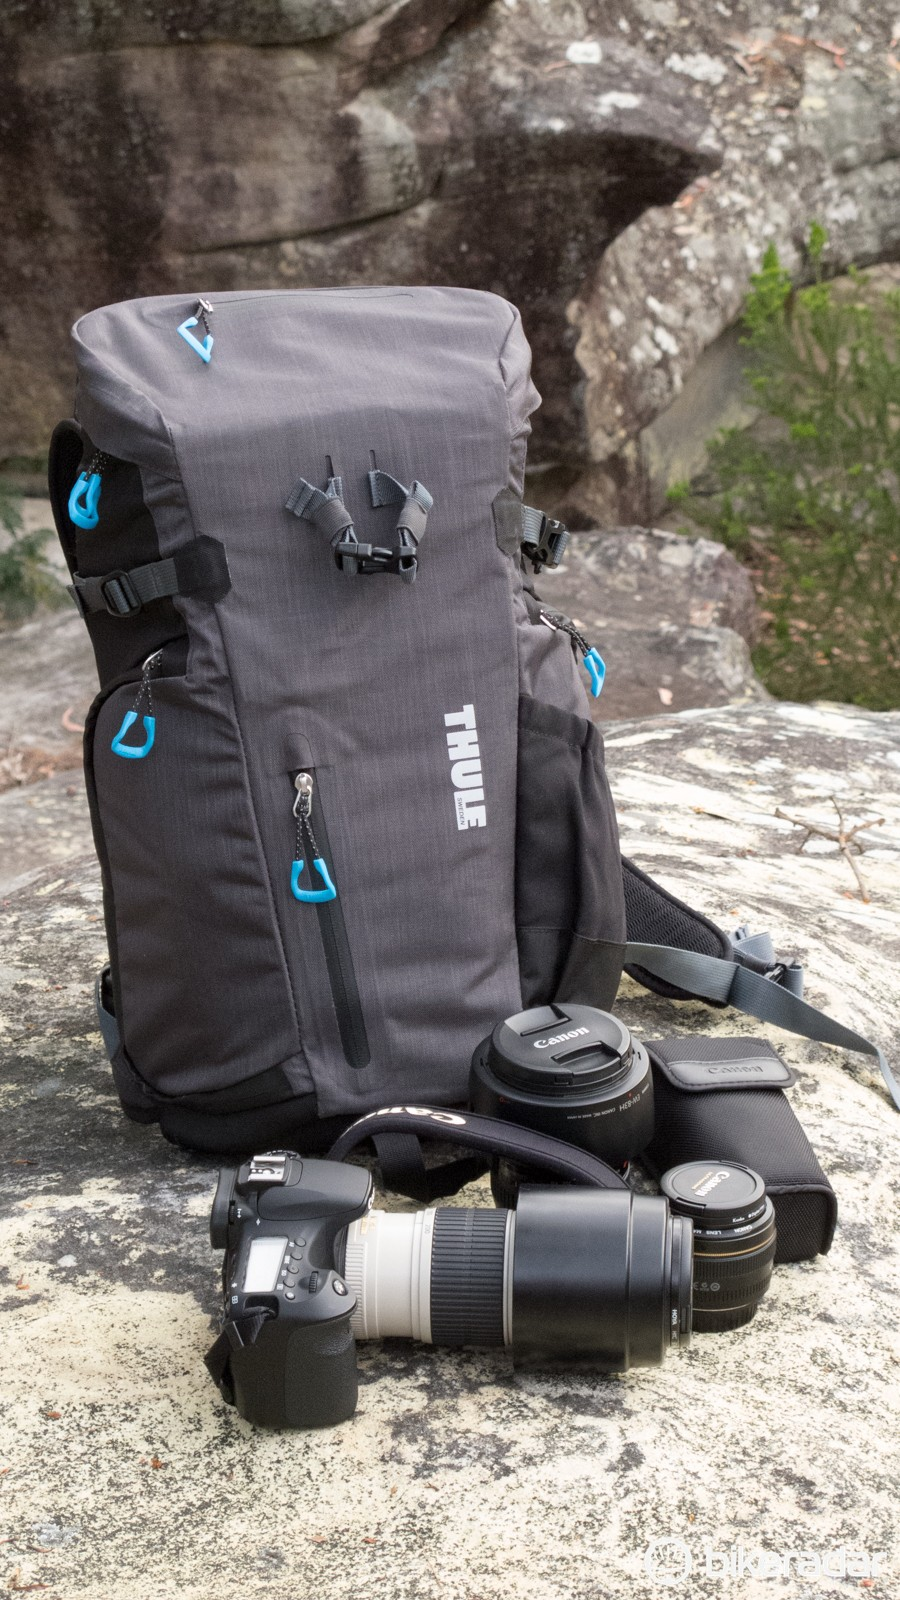 Professional photographers will likely find the carrying space too small, but it should work well for many enthusiasts